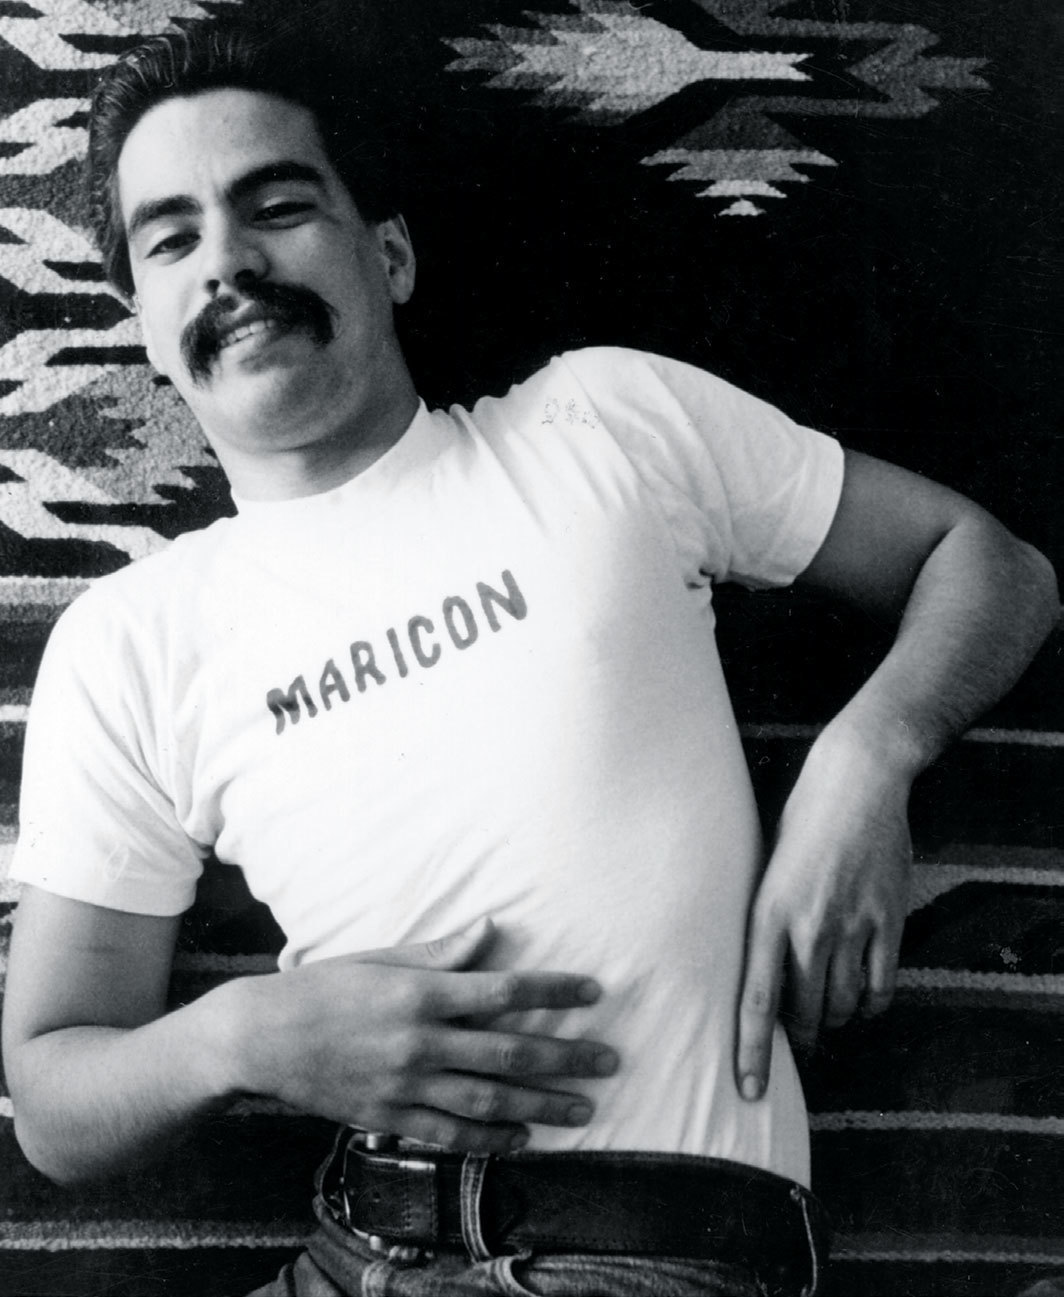 Joey Terrill wearing his MARICON T-shirt, 1975. Photo: Teddy Sandoval.